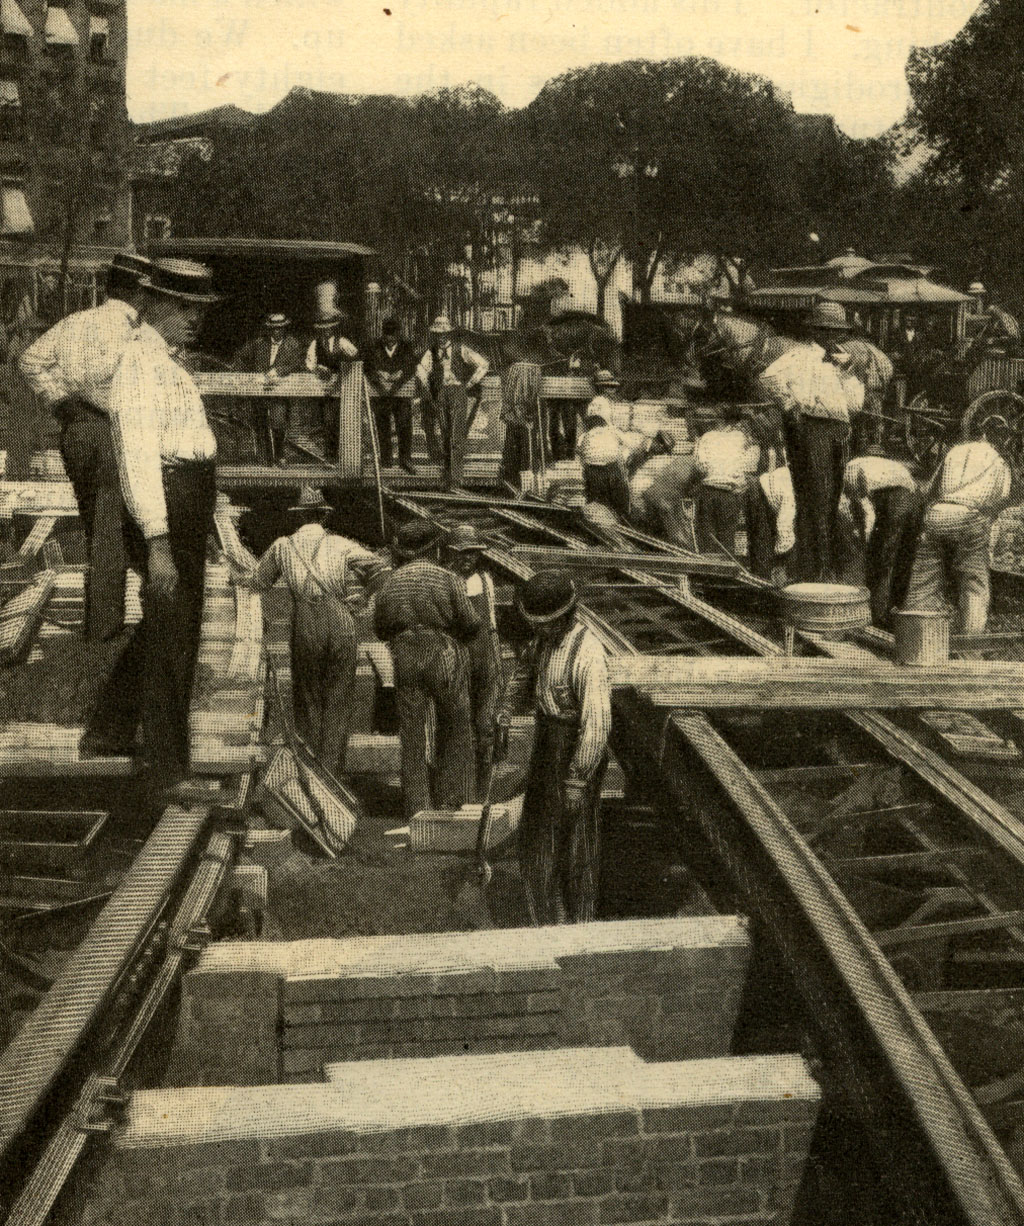 (481k, 1024x1226)<br><b>Country:</b> United States<br><b>City:</b> New York<br><b>System:</b> New York City Transit<br><b>Photo by:</b> Munsey's Magazine, 1902 <br><b>Notes:</b> Preliminary work in the circle at Eighth Avenue and Fifty-ninth Street, where the tracks of the electric surface line on upper Broadway were completed while the construction of the tunnel road was beginning.<br><b>Viewed (this week/total):</b> 2 / 4420